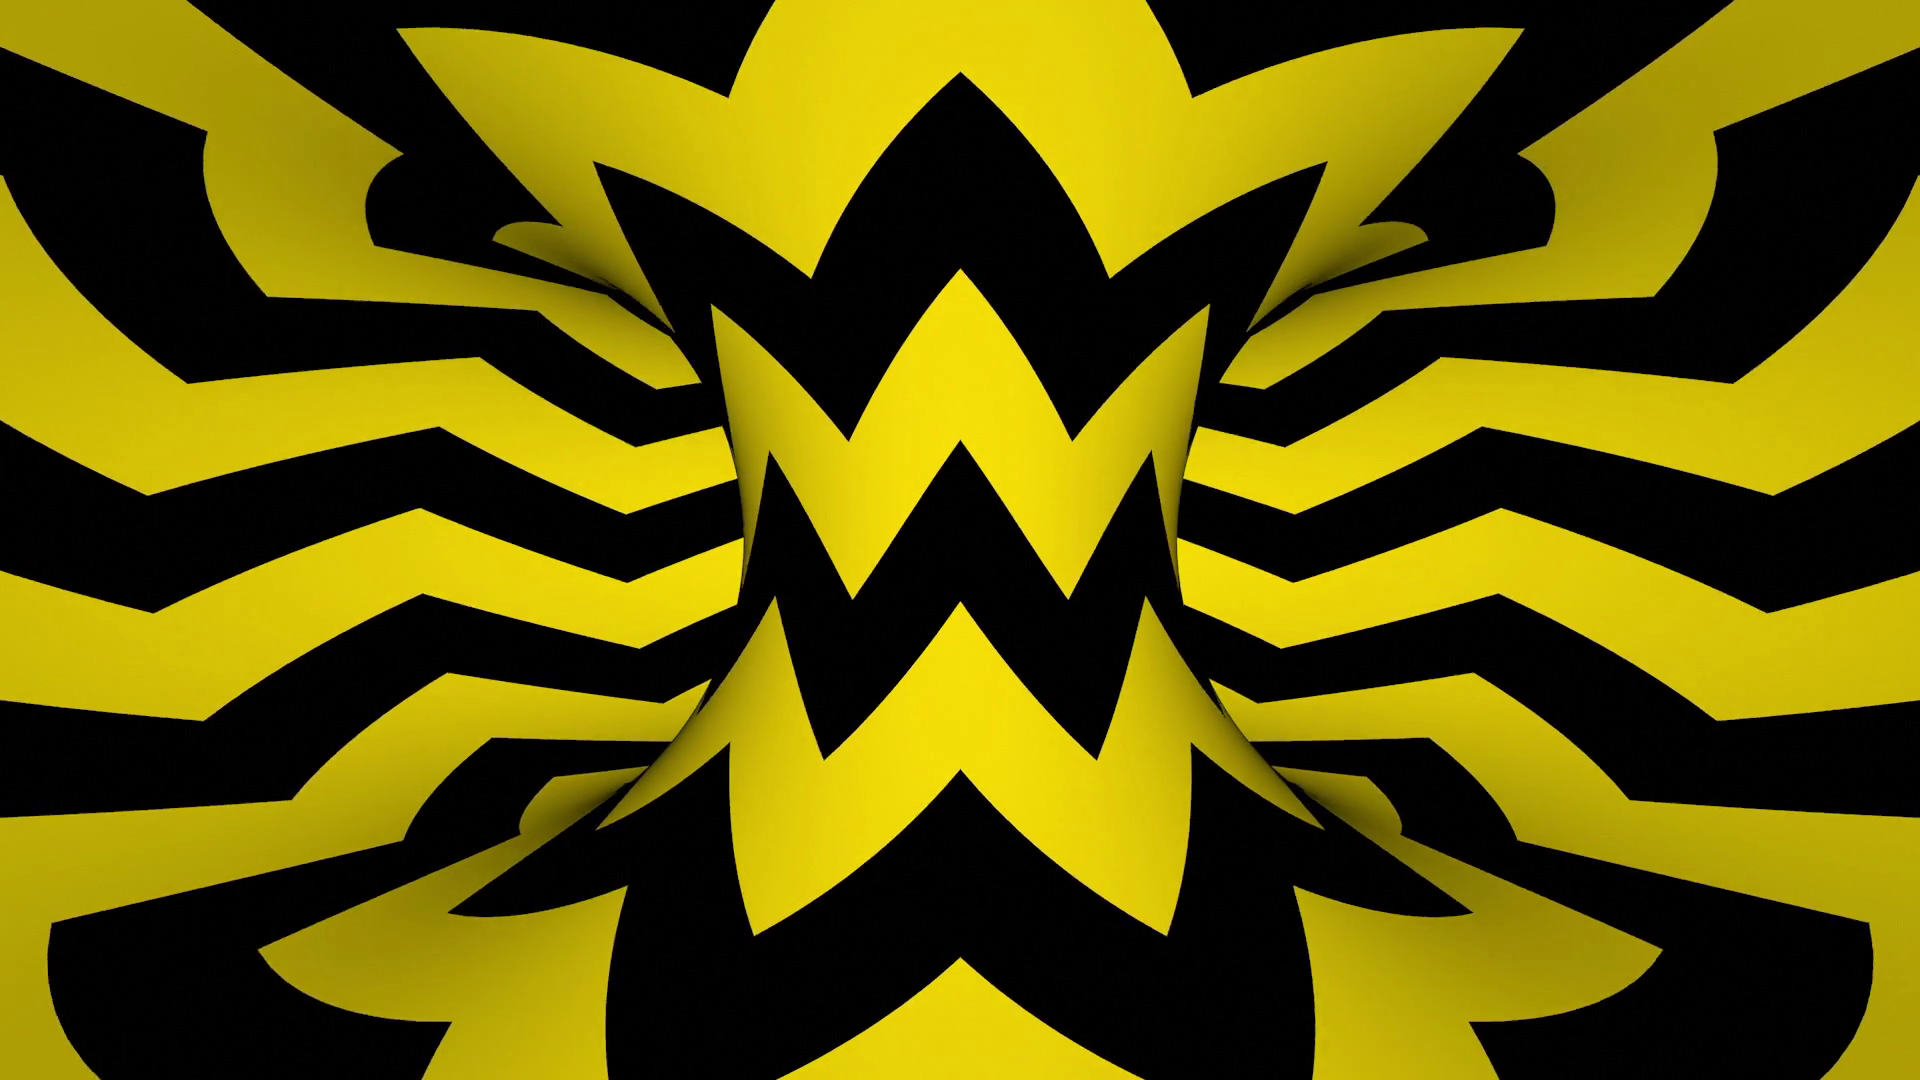 Black And Yellow HD Wallpaper